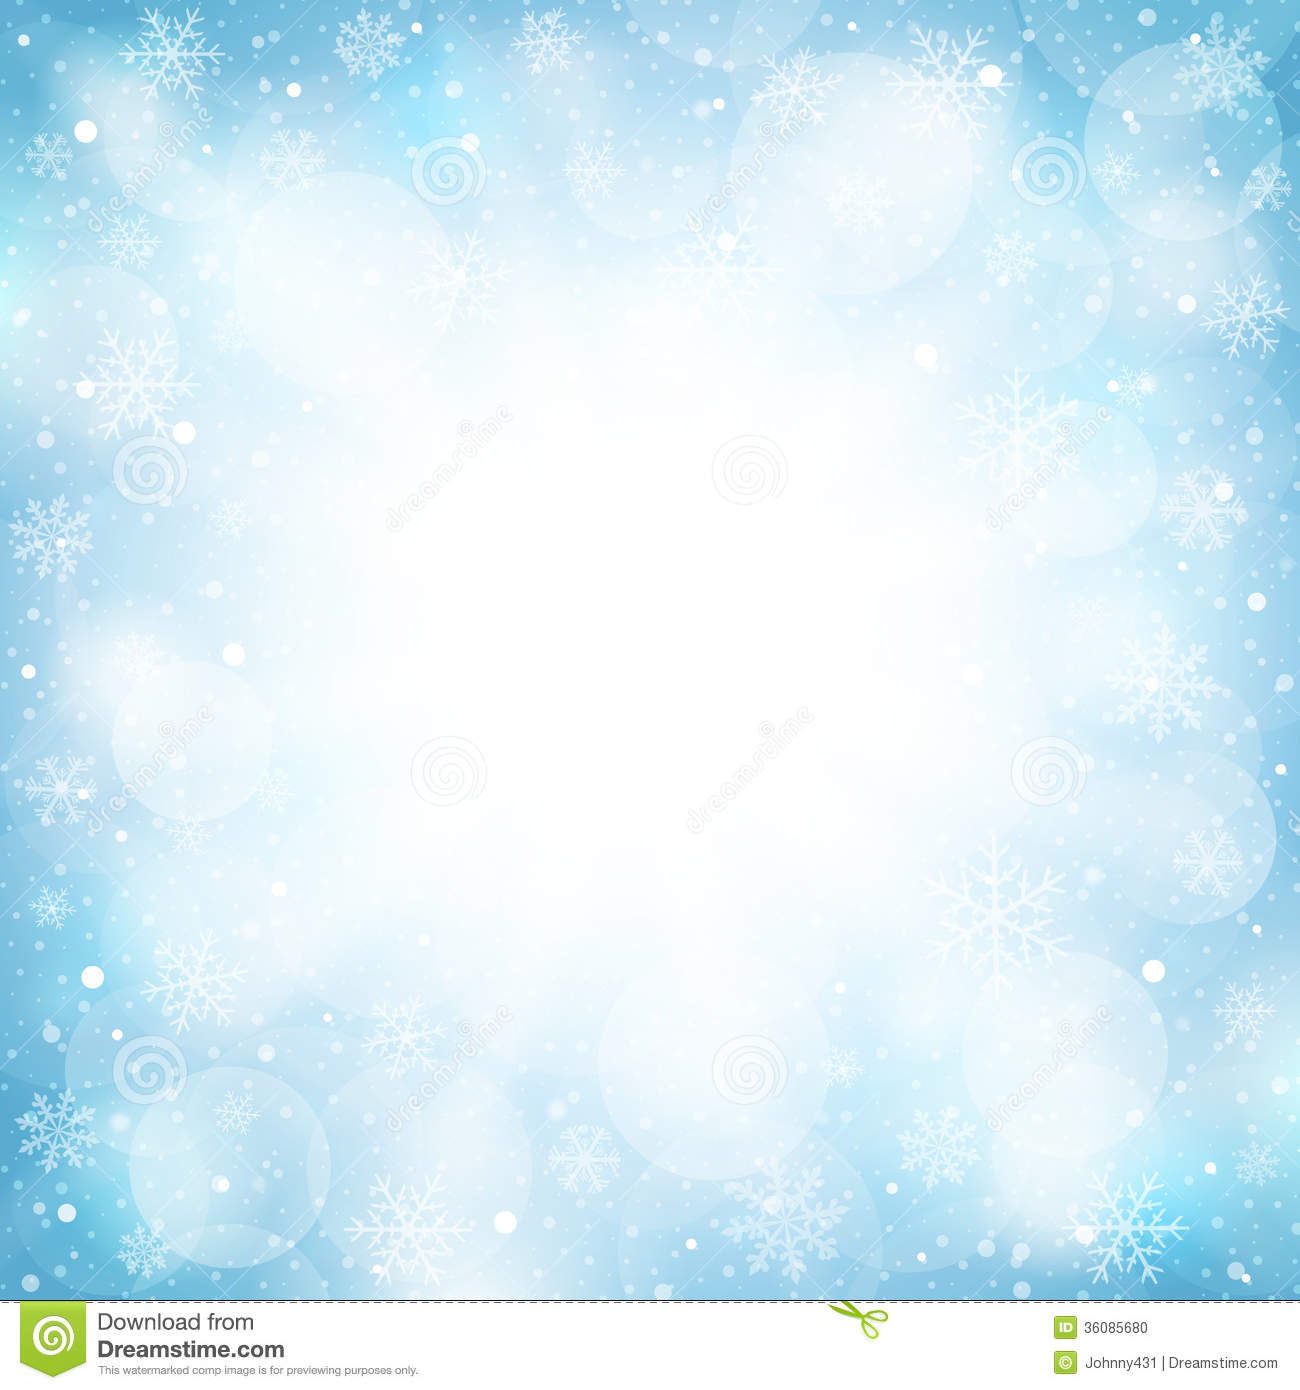 Snow Falling Wallpaper Download Ice Background Stock Photo Image 36085680